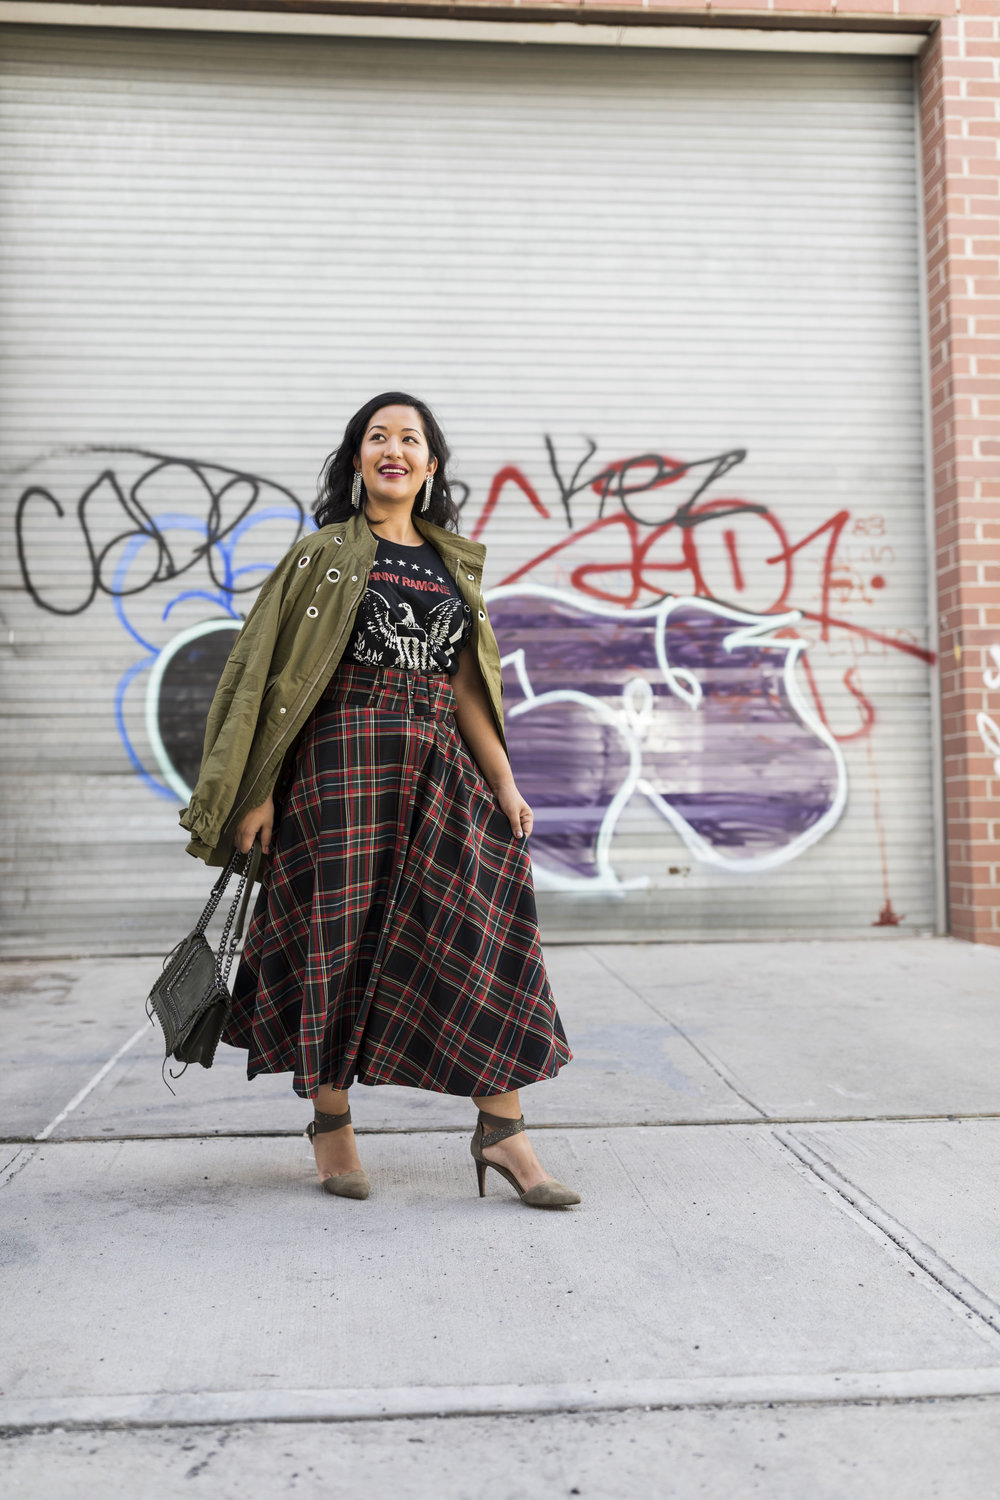 Krity S x Fall Trends x Plaid with a Punk Twist6.jpg